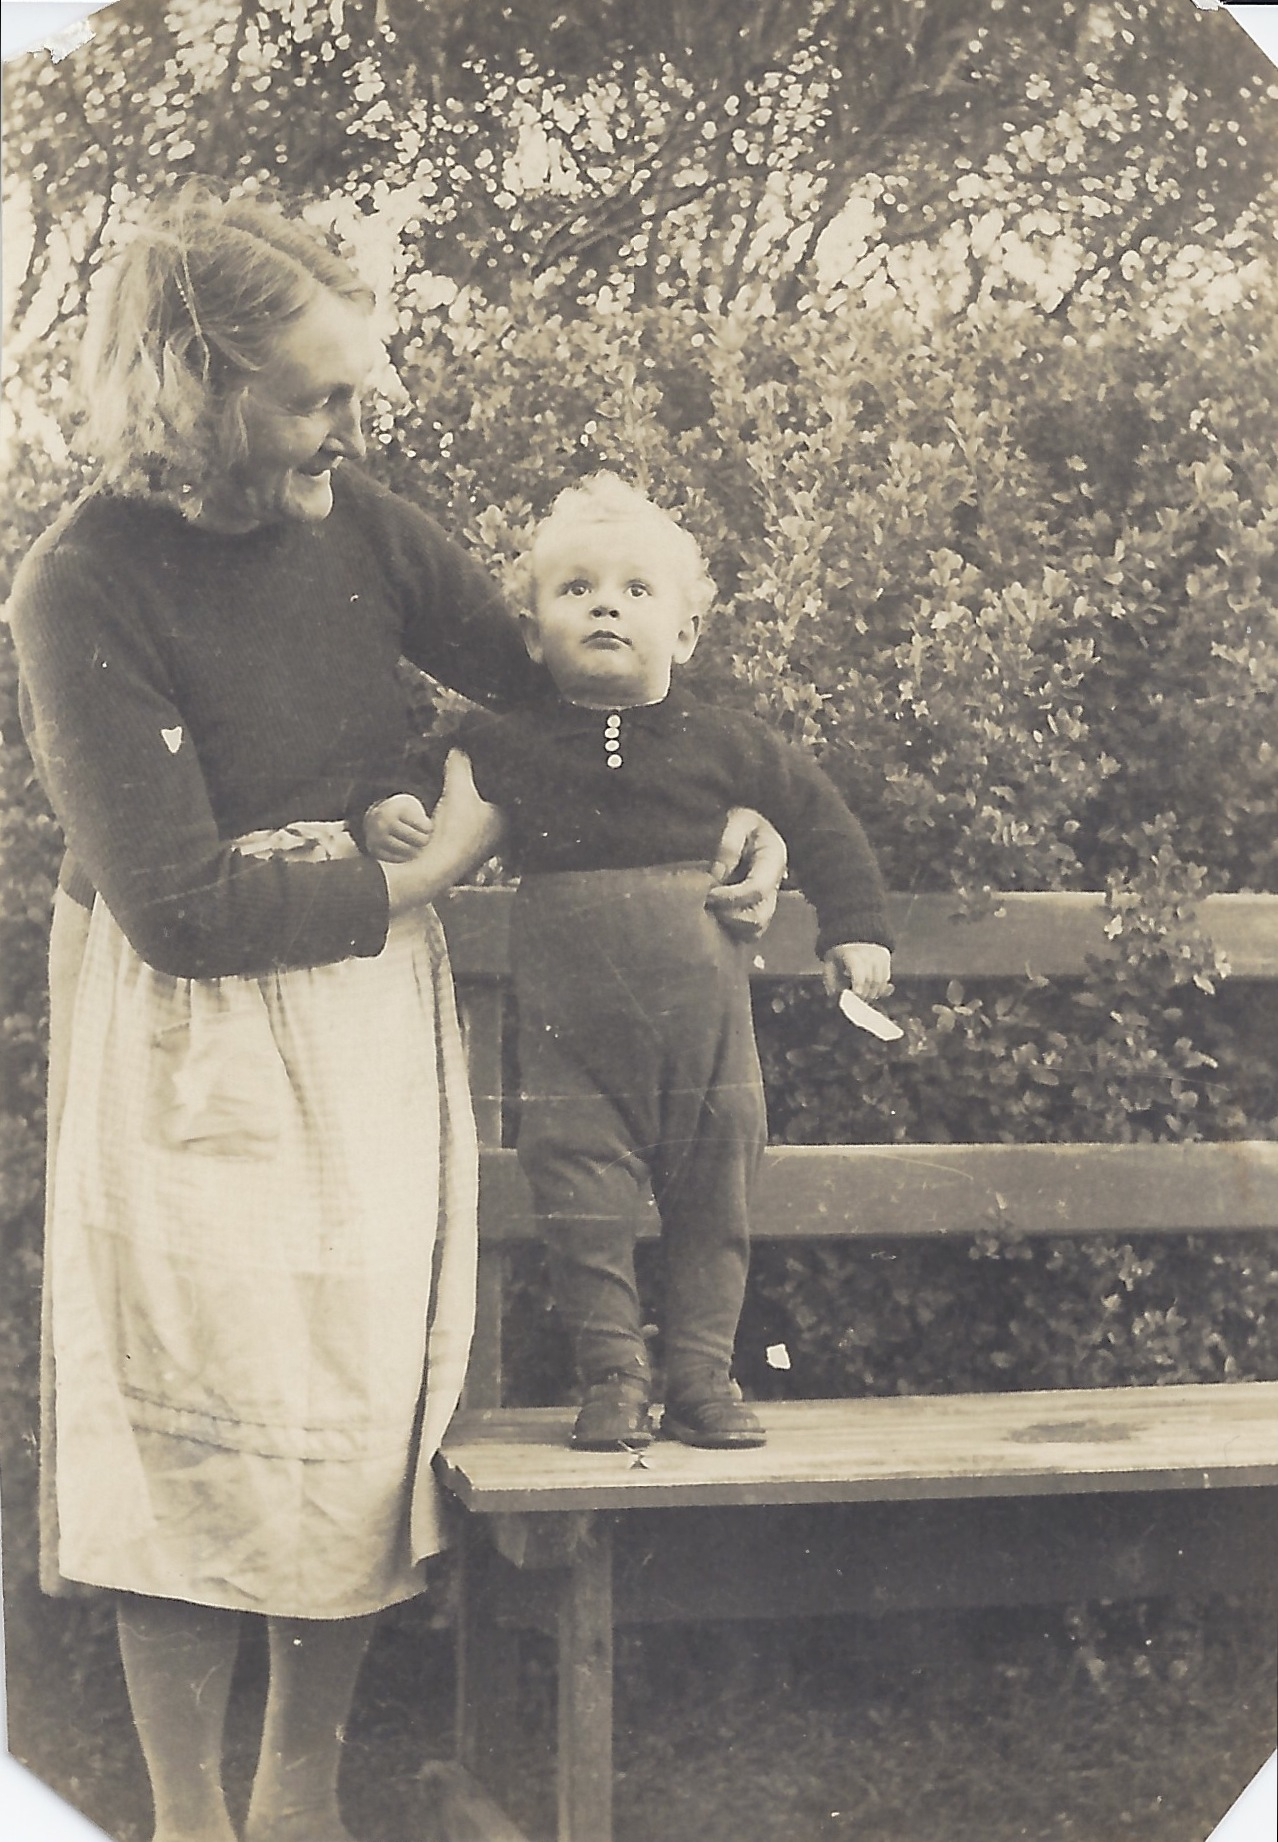 Florence Anderson (nee Britton) with Bob Anderson